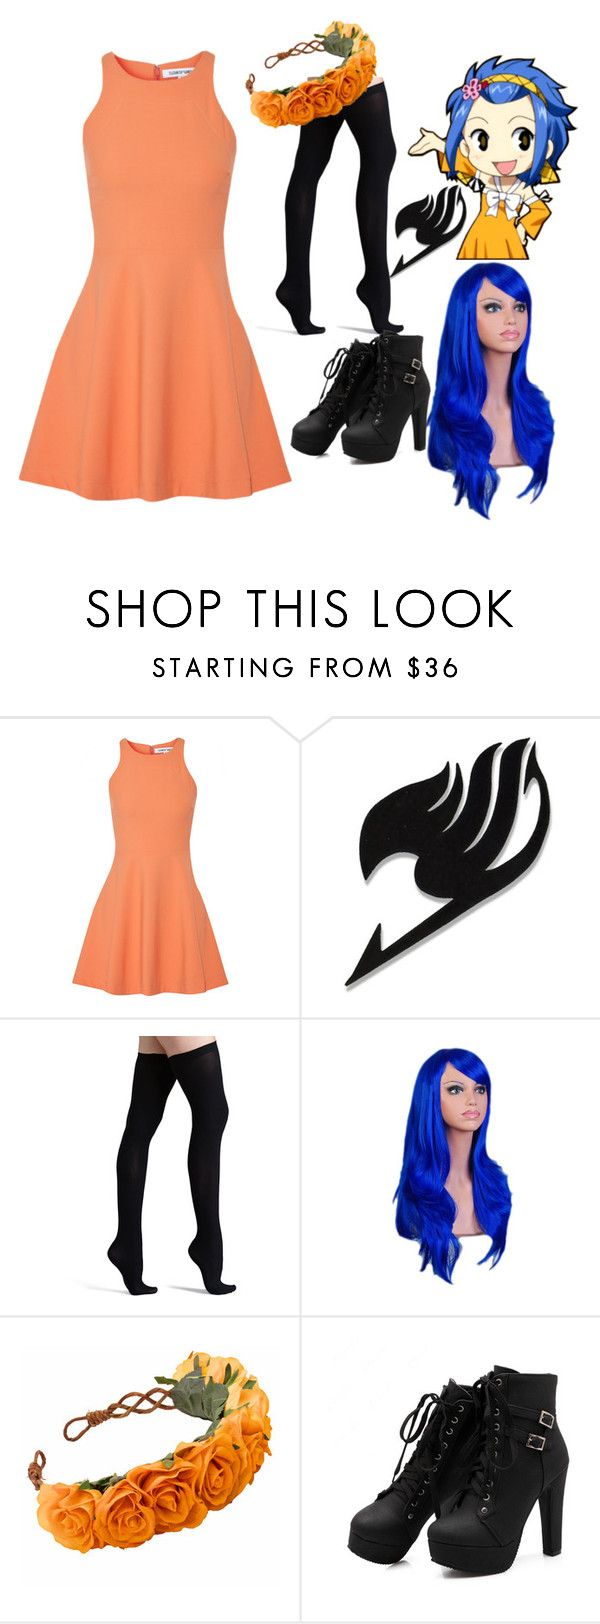 Cosplay clipart emo Cosplay and best Casual images